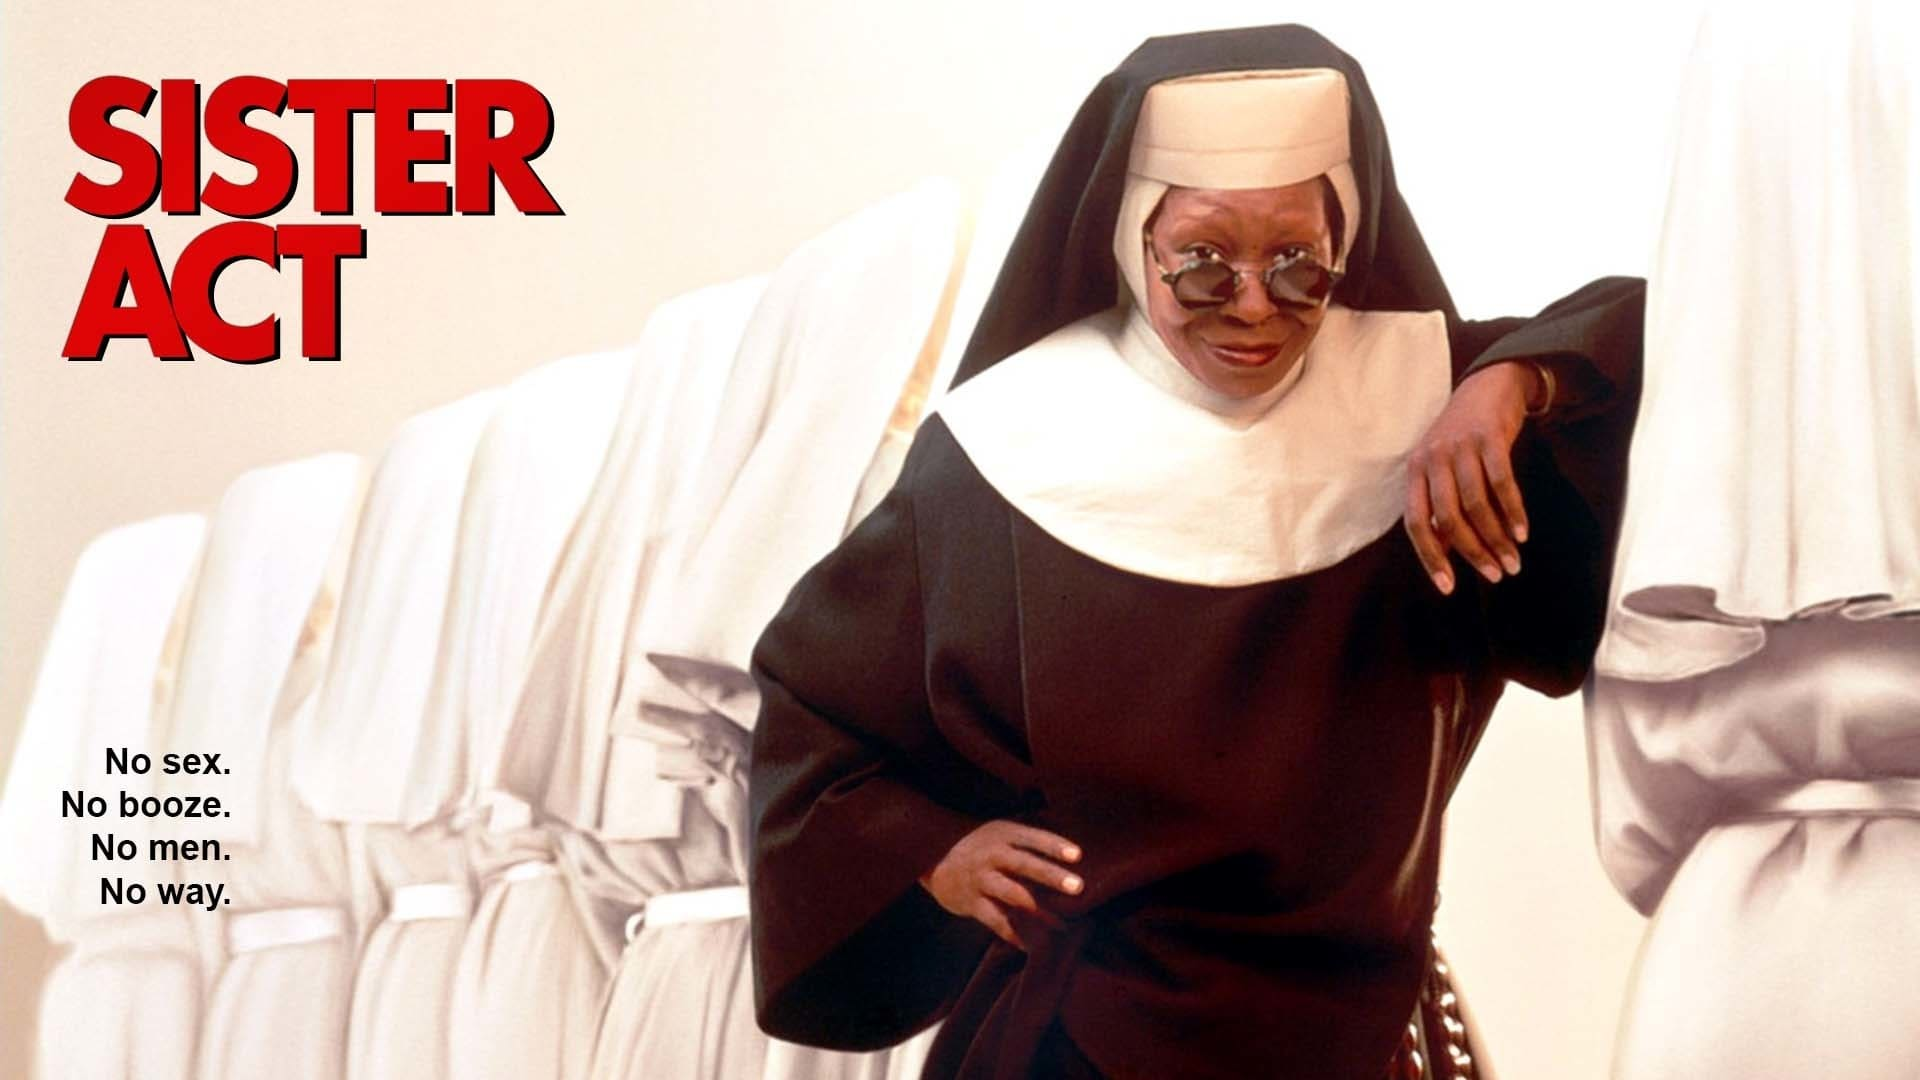 sister act 1992 123 movies online